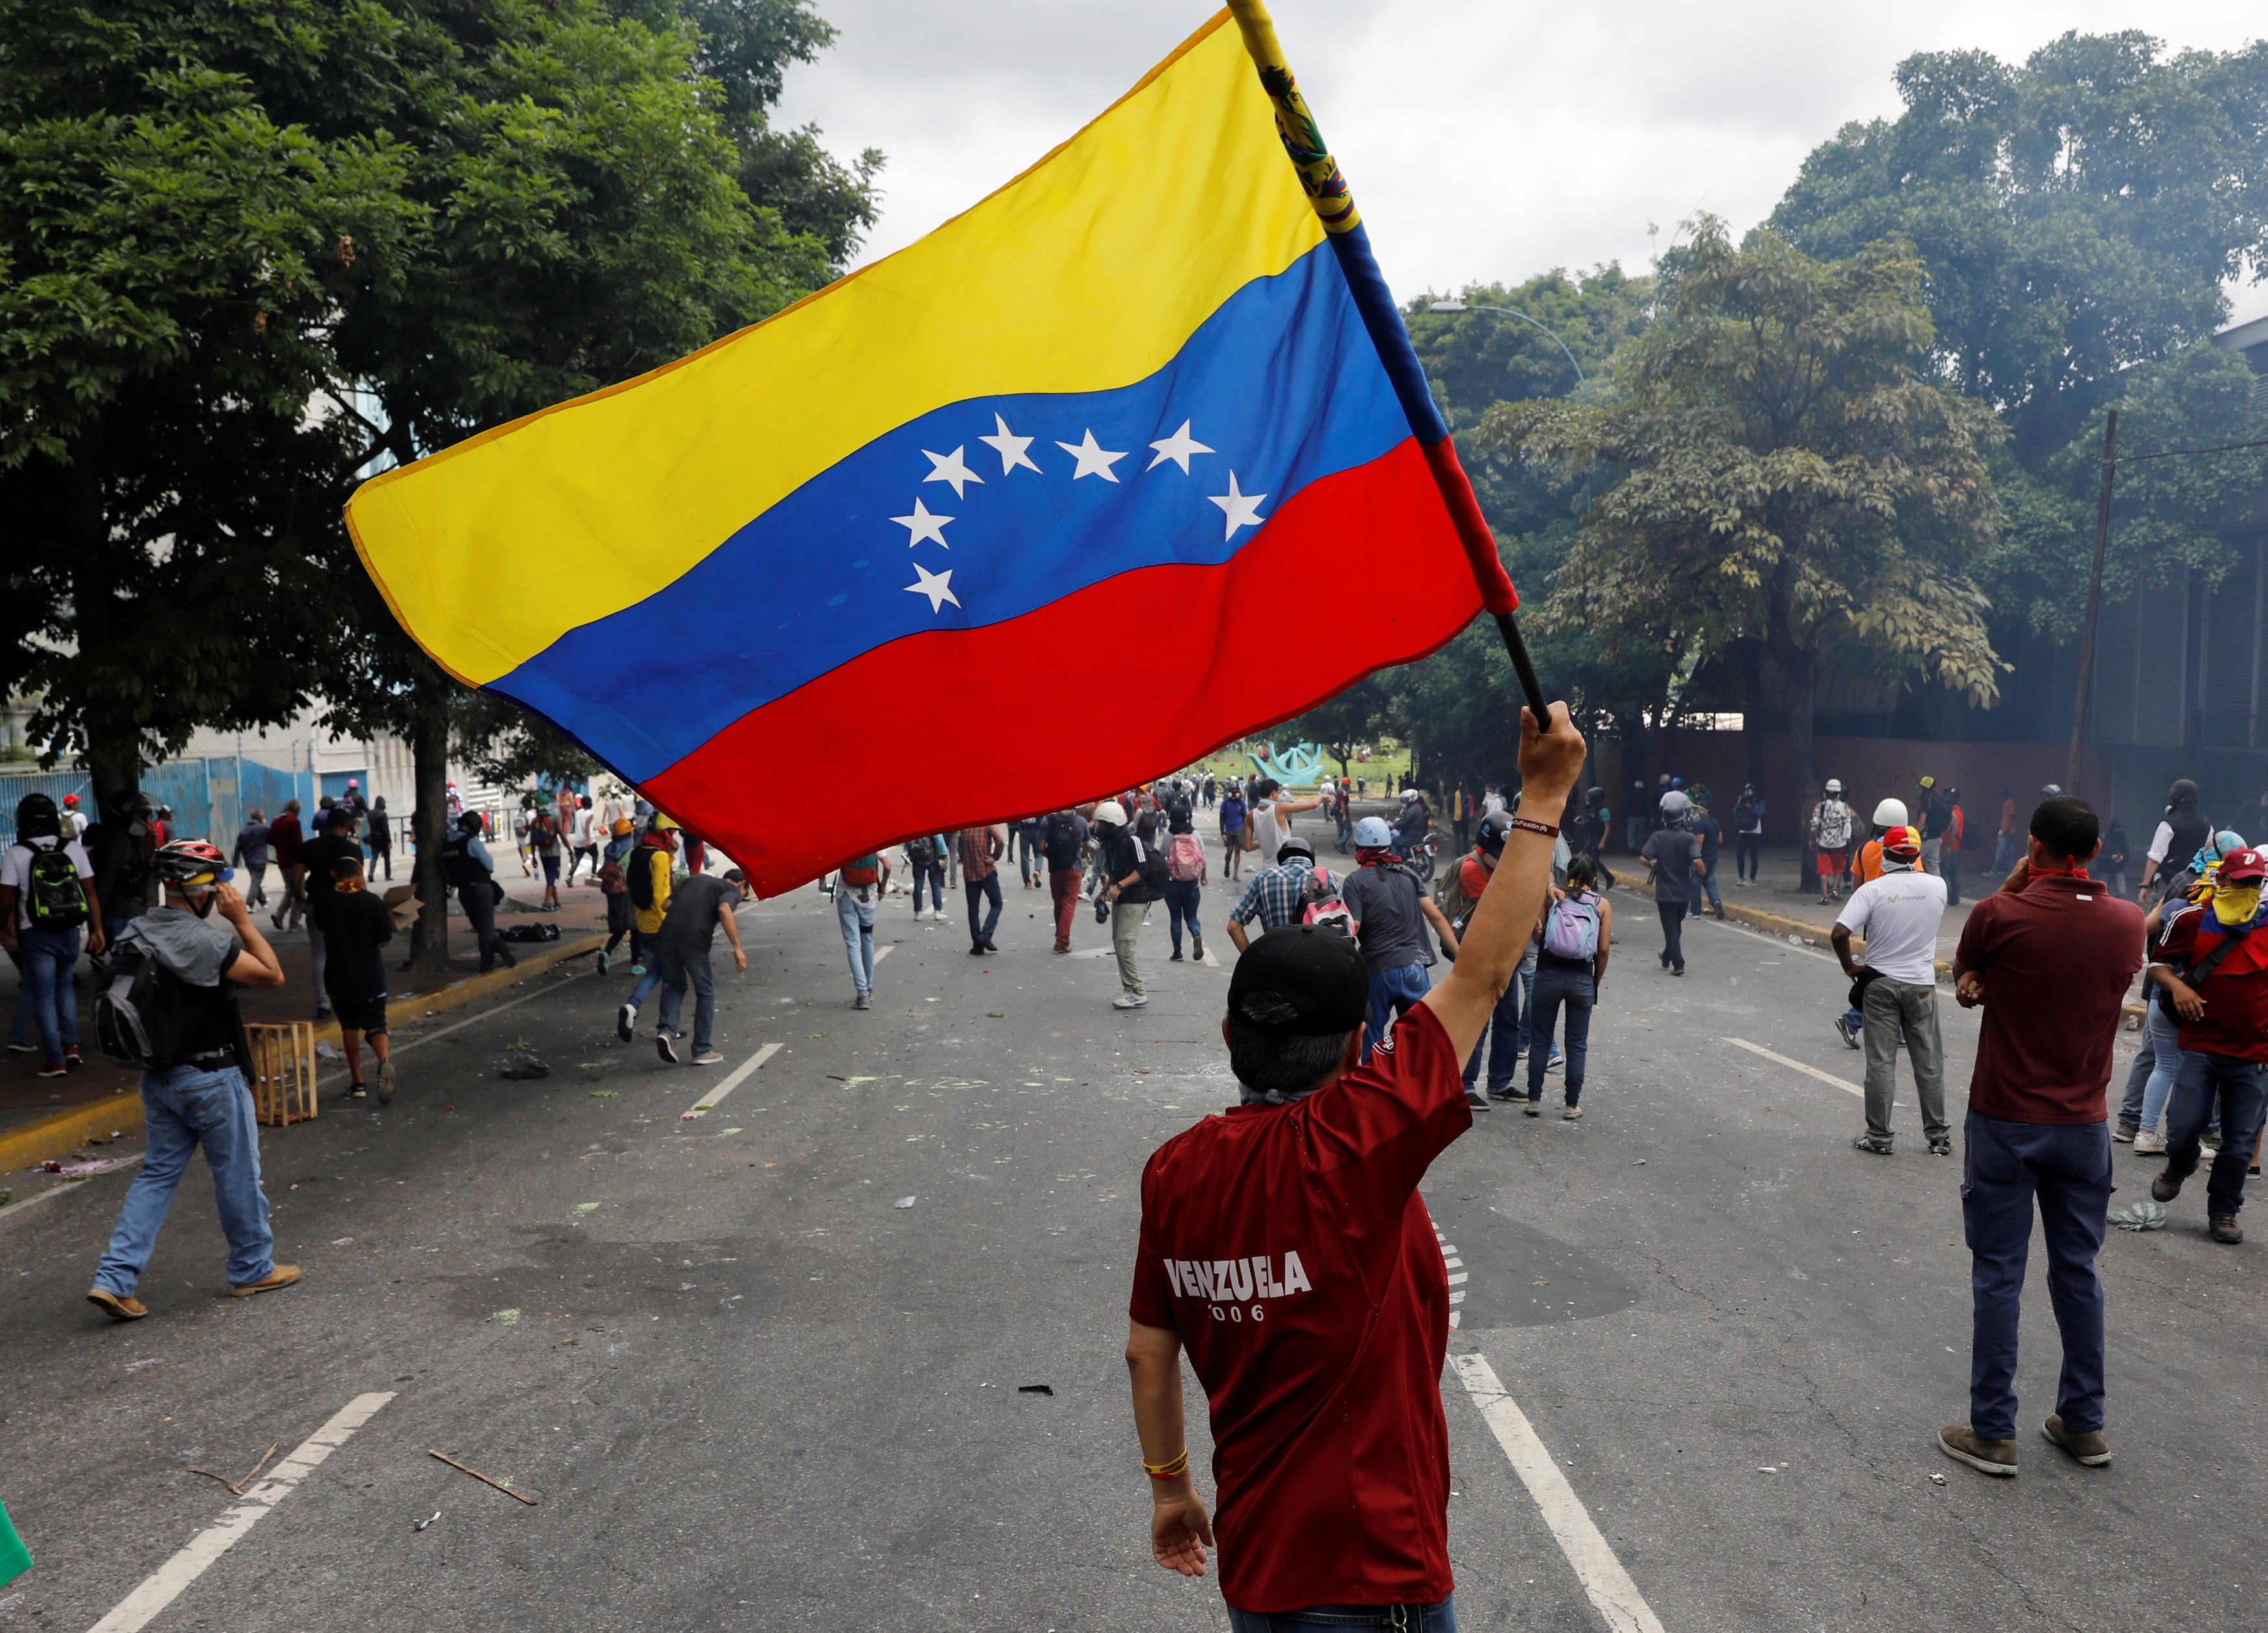 A demonstrator waves a Venezuela's flag while clashing with riot security forces during a rally against Venezuela's President Nicolas Maduro in Caracas, Venezuela June 5, 2017. REUTERS/Carlos Garcia Rawlins